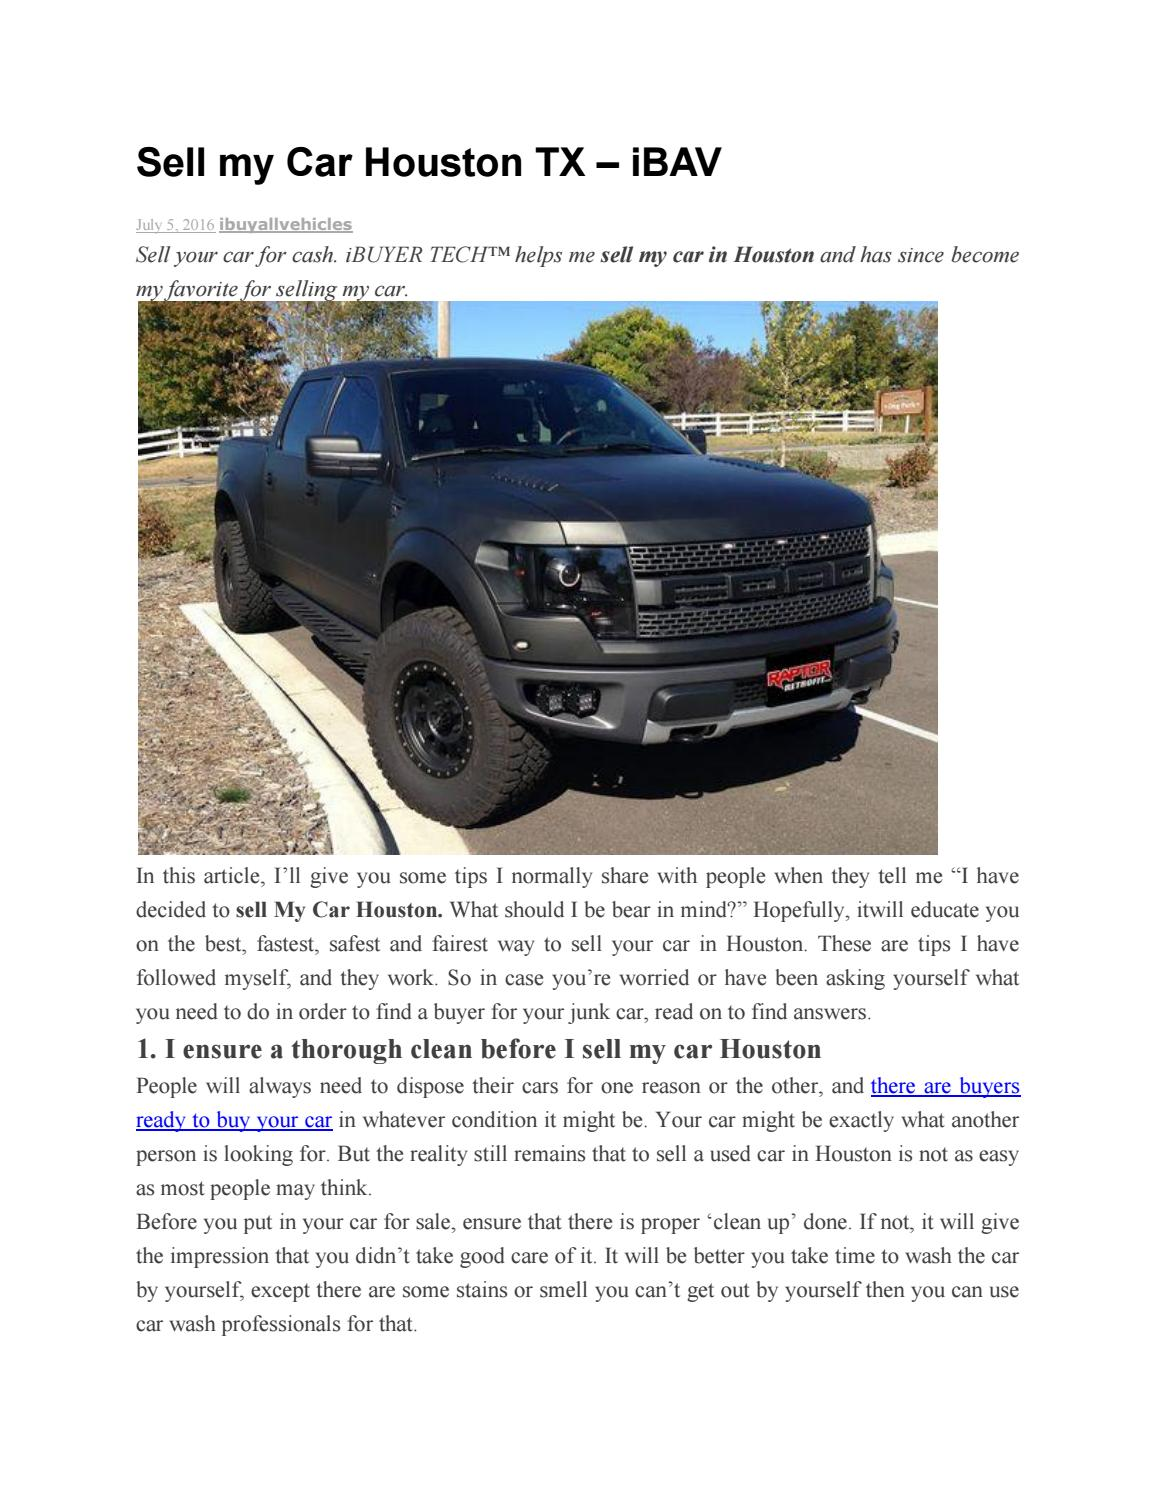 Sell my car houston tx by Ibuyall Vehicles - issuu